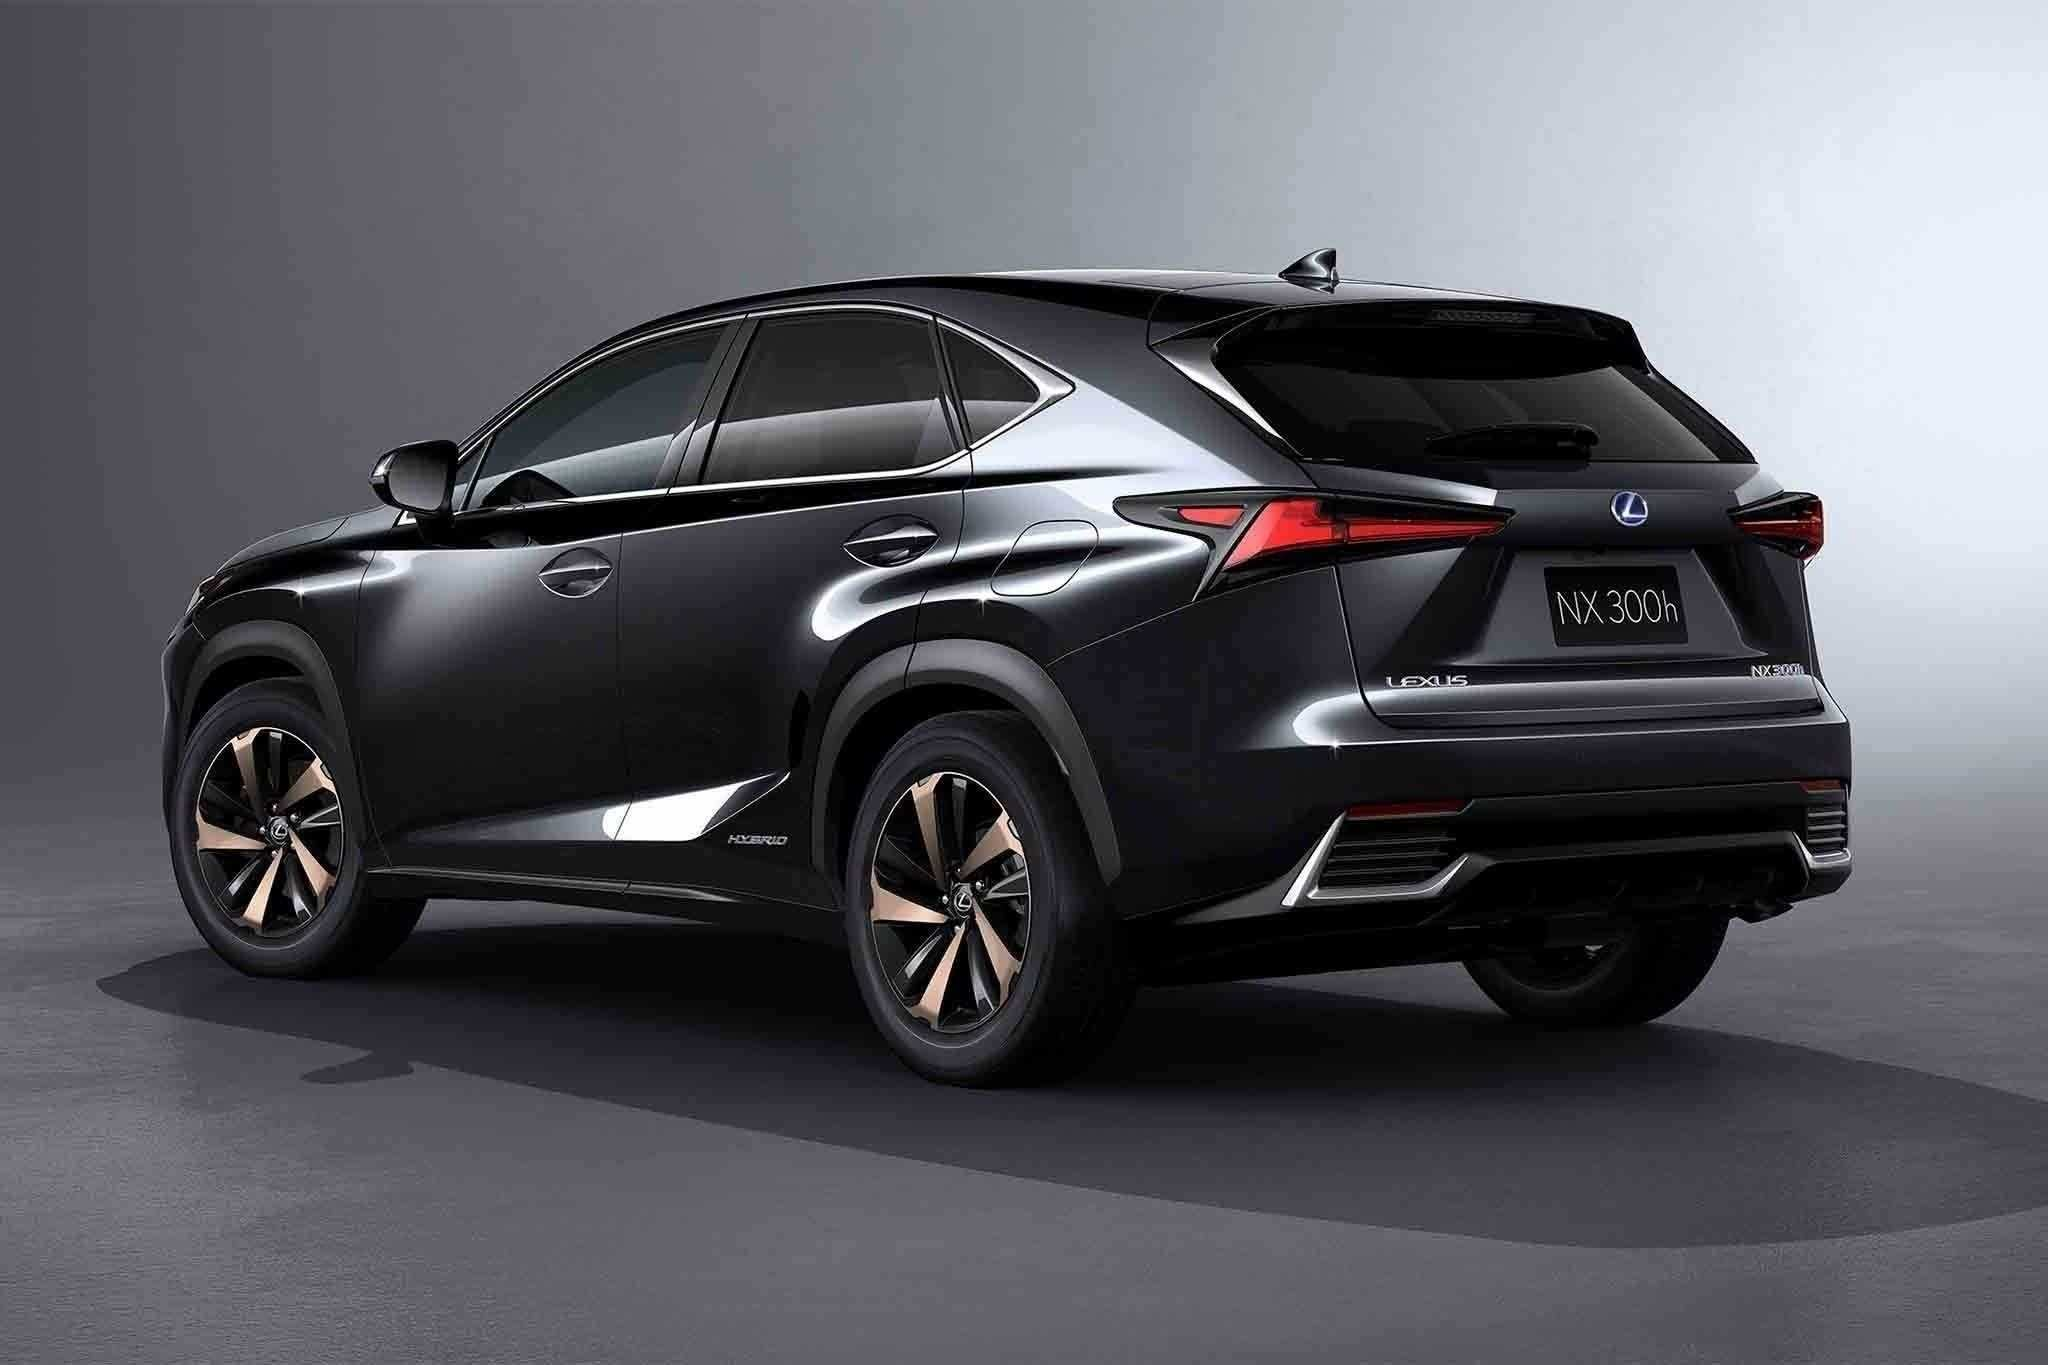 94 Best Review Lexus Is 200T 2019 Price and Review with Lexus Is 200T 2019